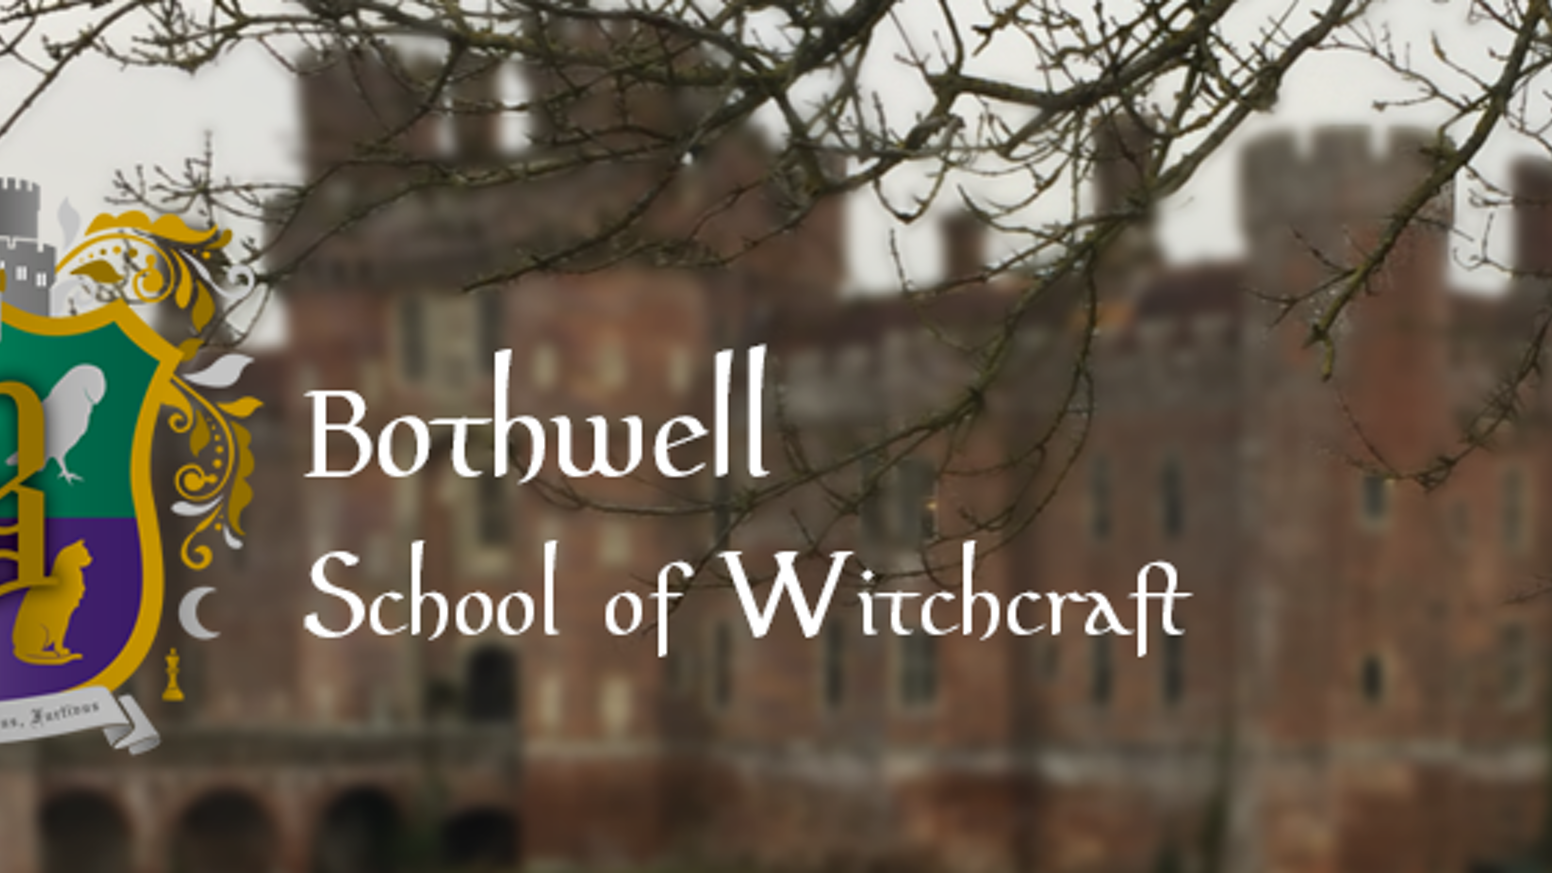 Be a witch in a world alive with magic at the Bothwell School of Witchcraft. Stay at our Castle and join this enchanting experience.